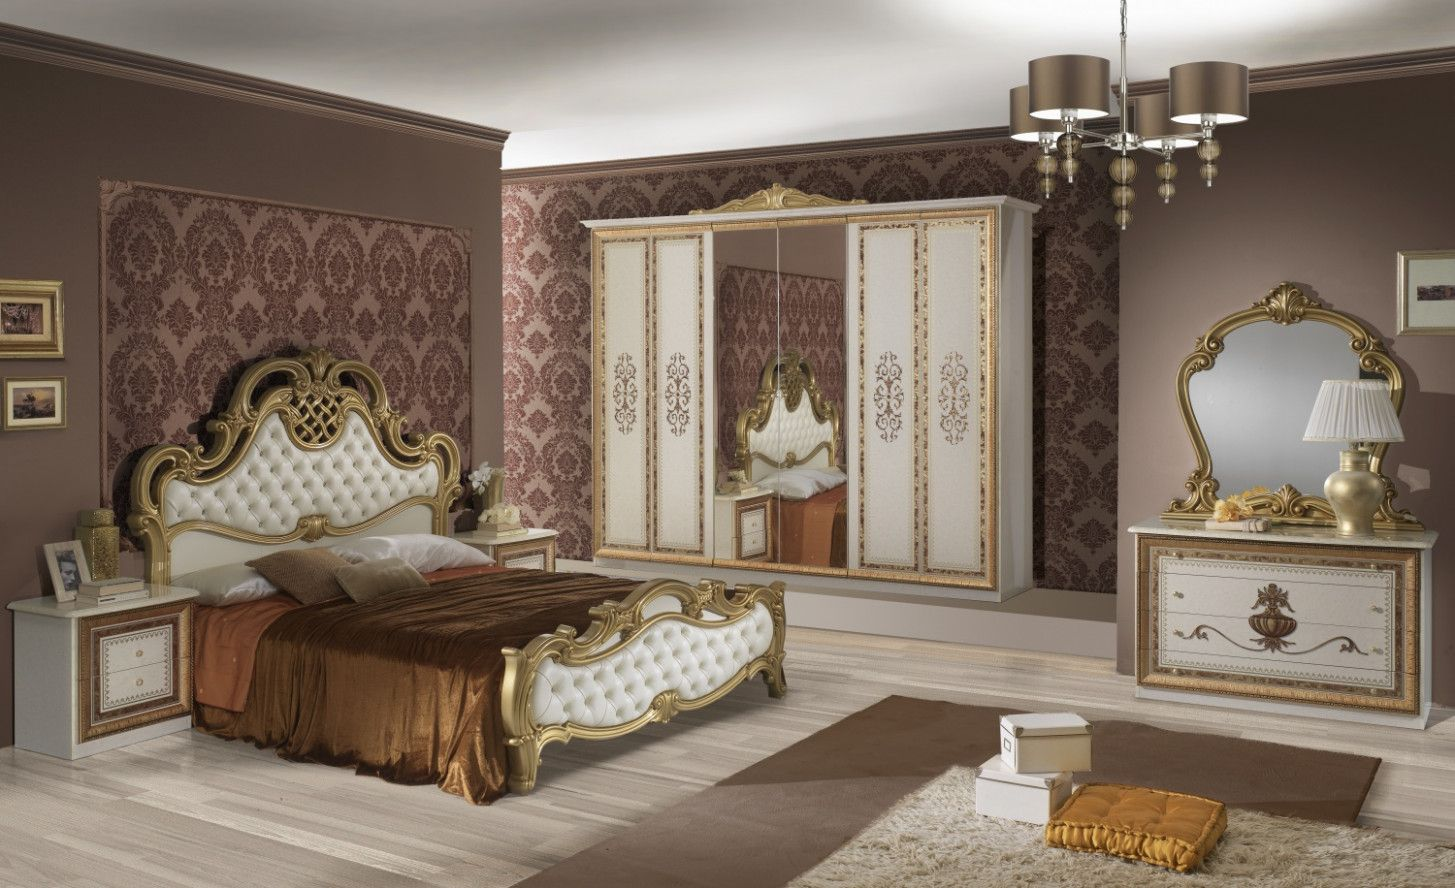 Seven Advice That You Must Listen Before Embarking On Schlafzimmer Barock Modern Schlafzimm Barock Schlafzimmer Schlafzimmer Zimmer